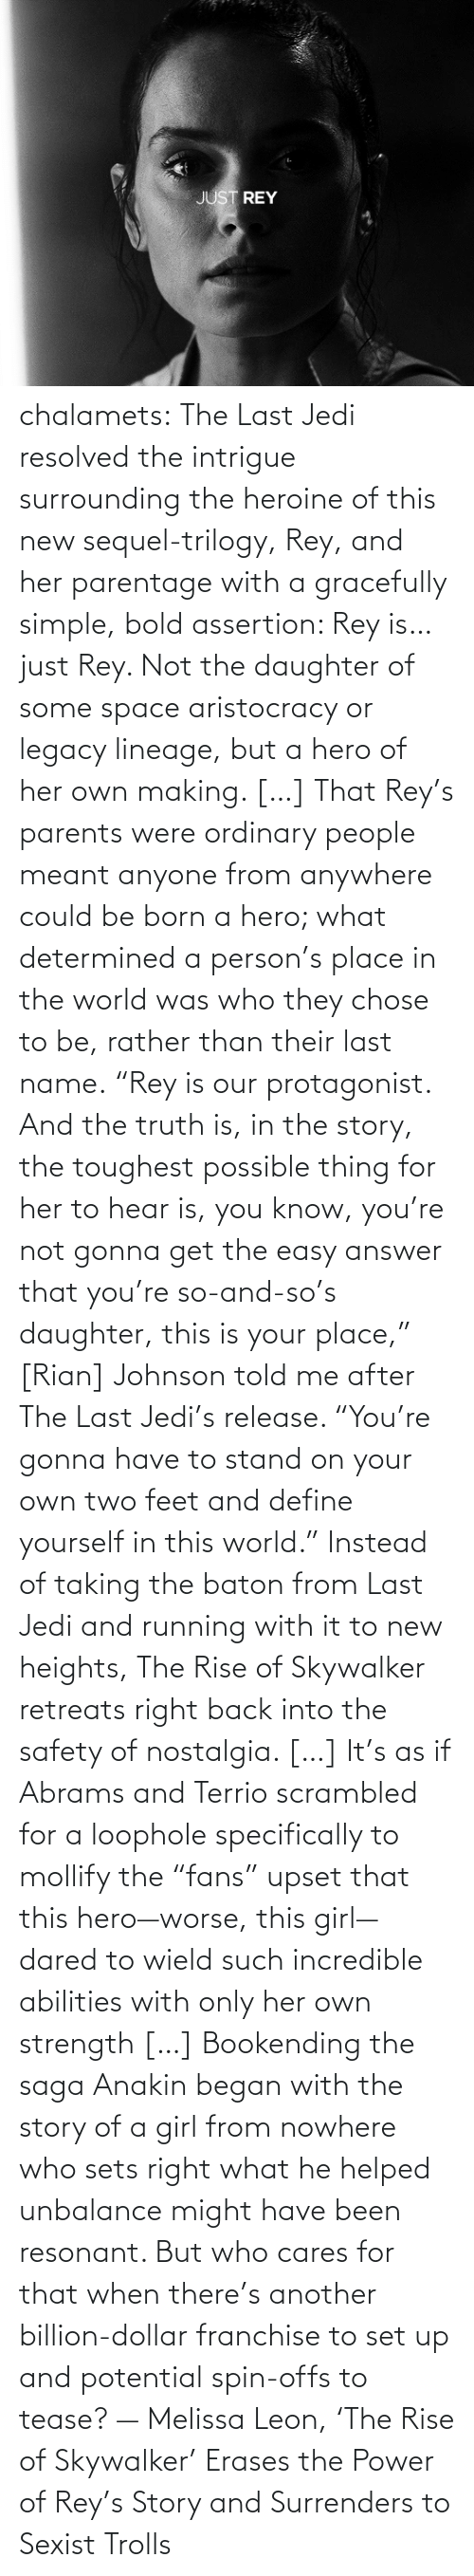 "www: chalamets:  The Last Jedi resolved the intrigue surrounding the heroine of this new sequel-trilogy, Rey, and her parentage with a gracefully simple, bold assertion: Rey is… just Rey. Not the daughter of some space aristocracy or legacy lineage, but a hero of her own making. […] That Rey's parents were ordinary people meant anyone from anywhere could be born a hero; what determined a person's place in the world was who they chose to be, rather than their last name. ""Rey is our protagonist. And the truth is, in the story, the toughest possible thing for her to hear is, you know, you're not gonna get the easy answer that you're so-and-so's daughter, this is your place,"" [Rian] Johnson told me after The Last Jedi's release. ""You're gonna have to stand on your own two feet and define yourself in this world."" Instead of taking the baton from Last Jedi and running with it to new heights, The Rise of Skywalker retreats right back into the safety of nostalgia. […] It's as if Abrams and Terrio scrambled for a loophole specifically to mollify the ""fans"" upset that this hero—worse, this girl—dared to wield such incredible abilities with only her own strength […] Bookending the saga Anakin began with the story of a girl from nowhere who sets right what he helped unbalance might have been resonant. But who cares for that when there's another billion-dollar franchise to set up and potential spin-offs to tease? — Melissa Leon, 'The Rise of Skywalker' Erases the Power of Rey's Story and Surrenders to Sexist Trolls"